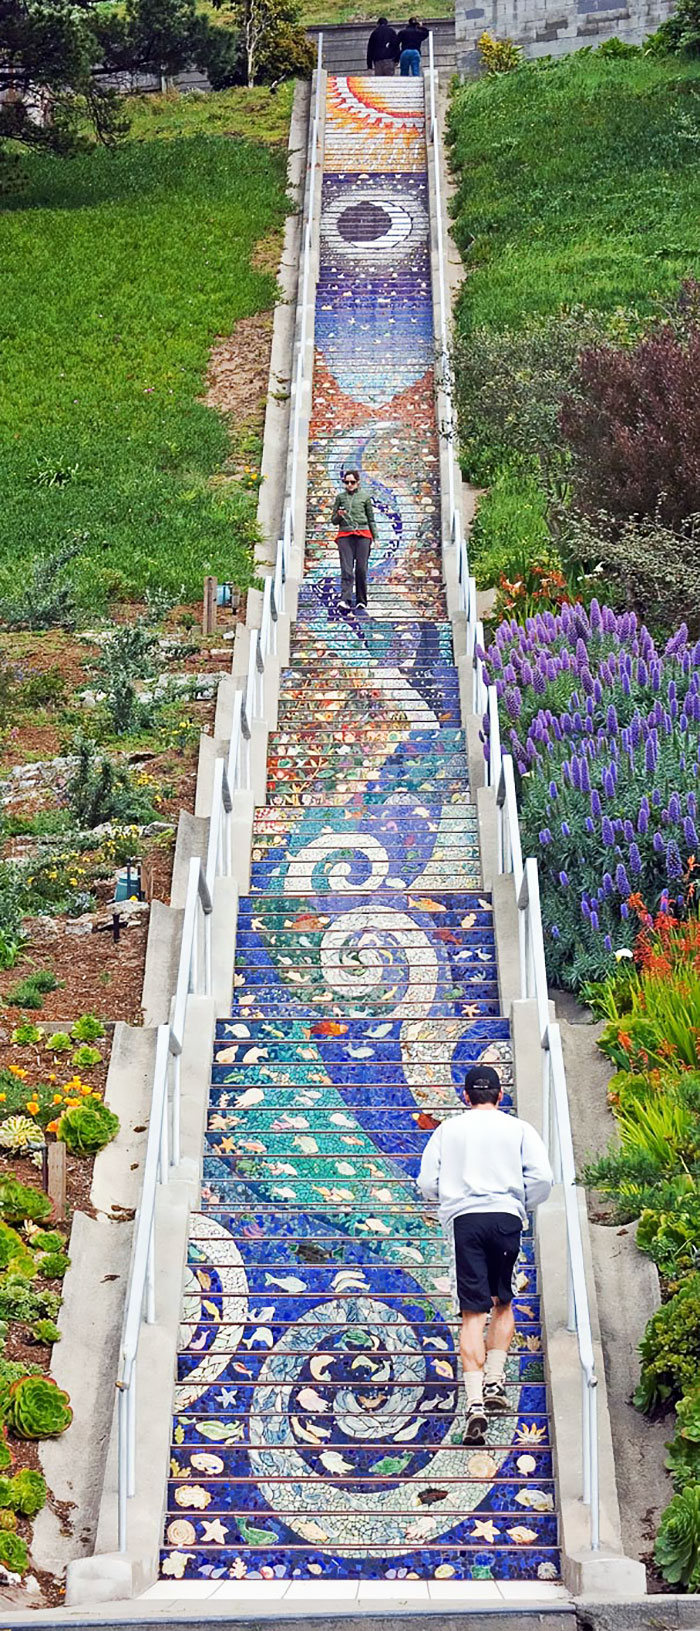 During The Day, The Tile Steps Look Incredibly Beautiful